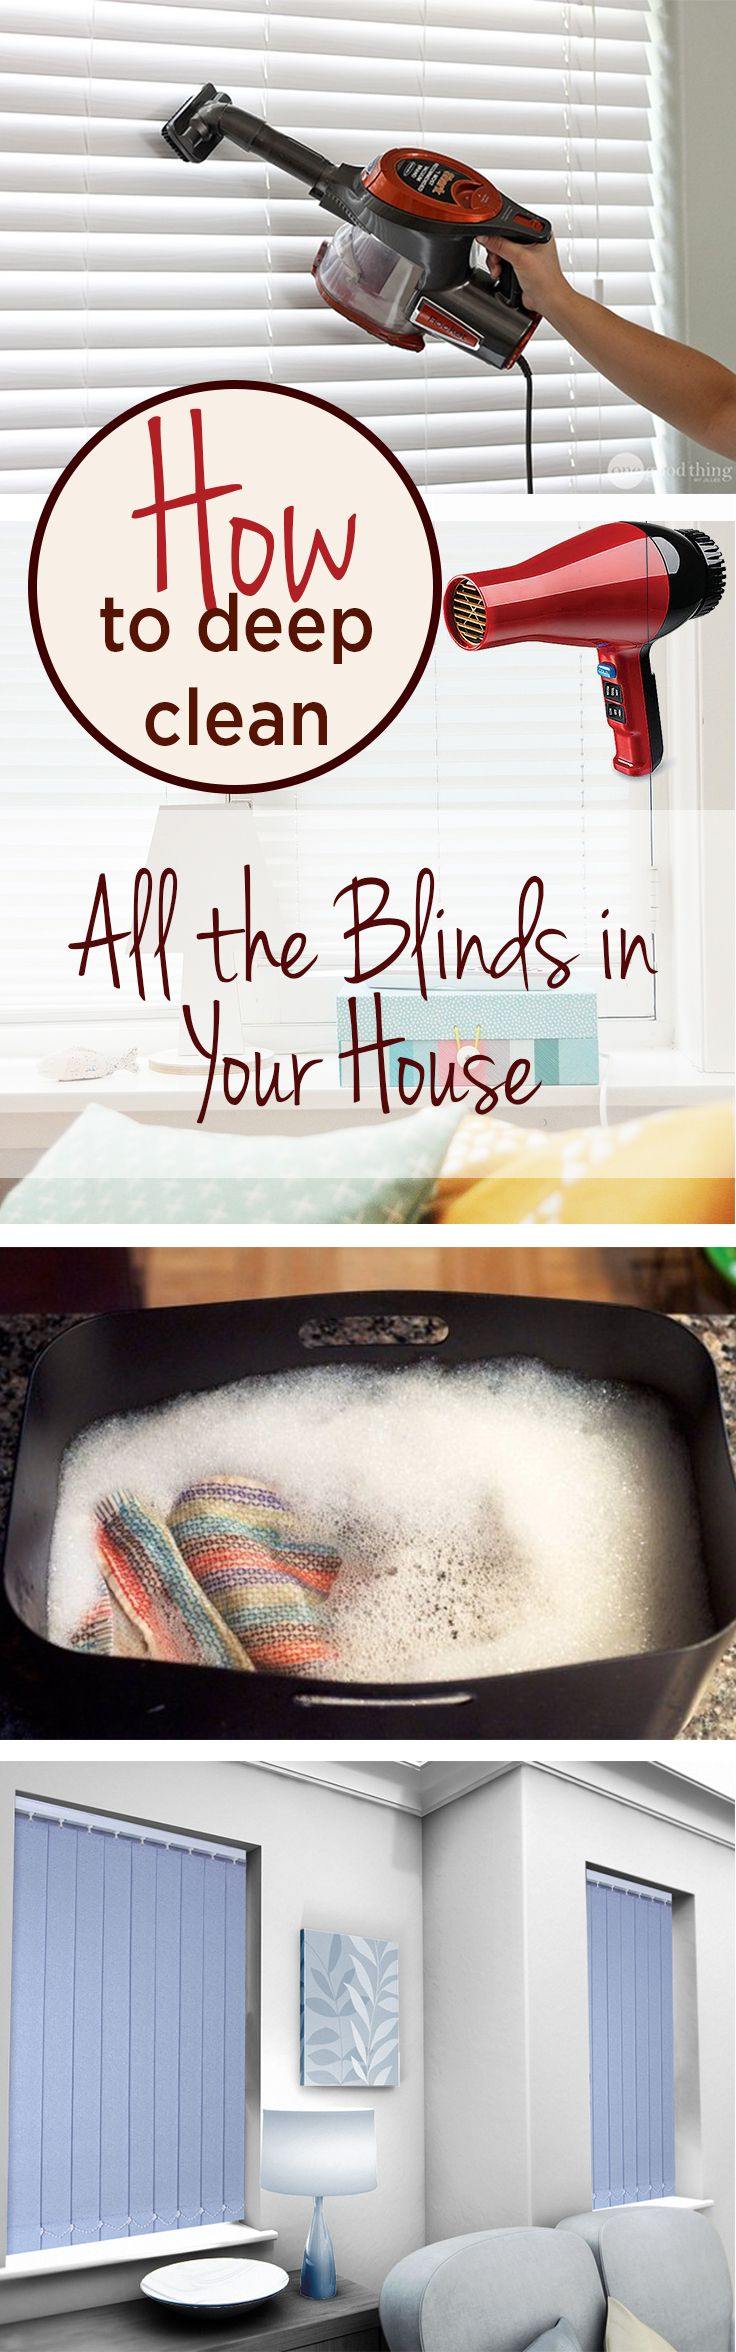 How to Deep Clean All the Blinds in Your House